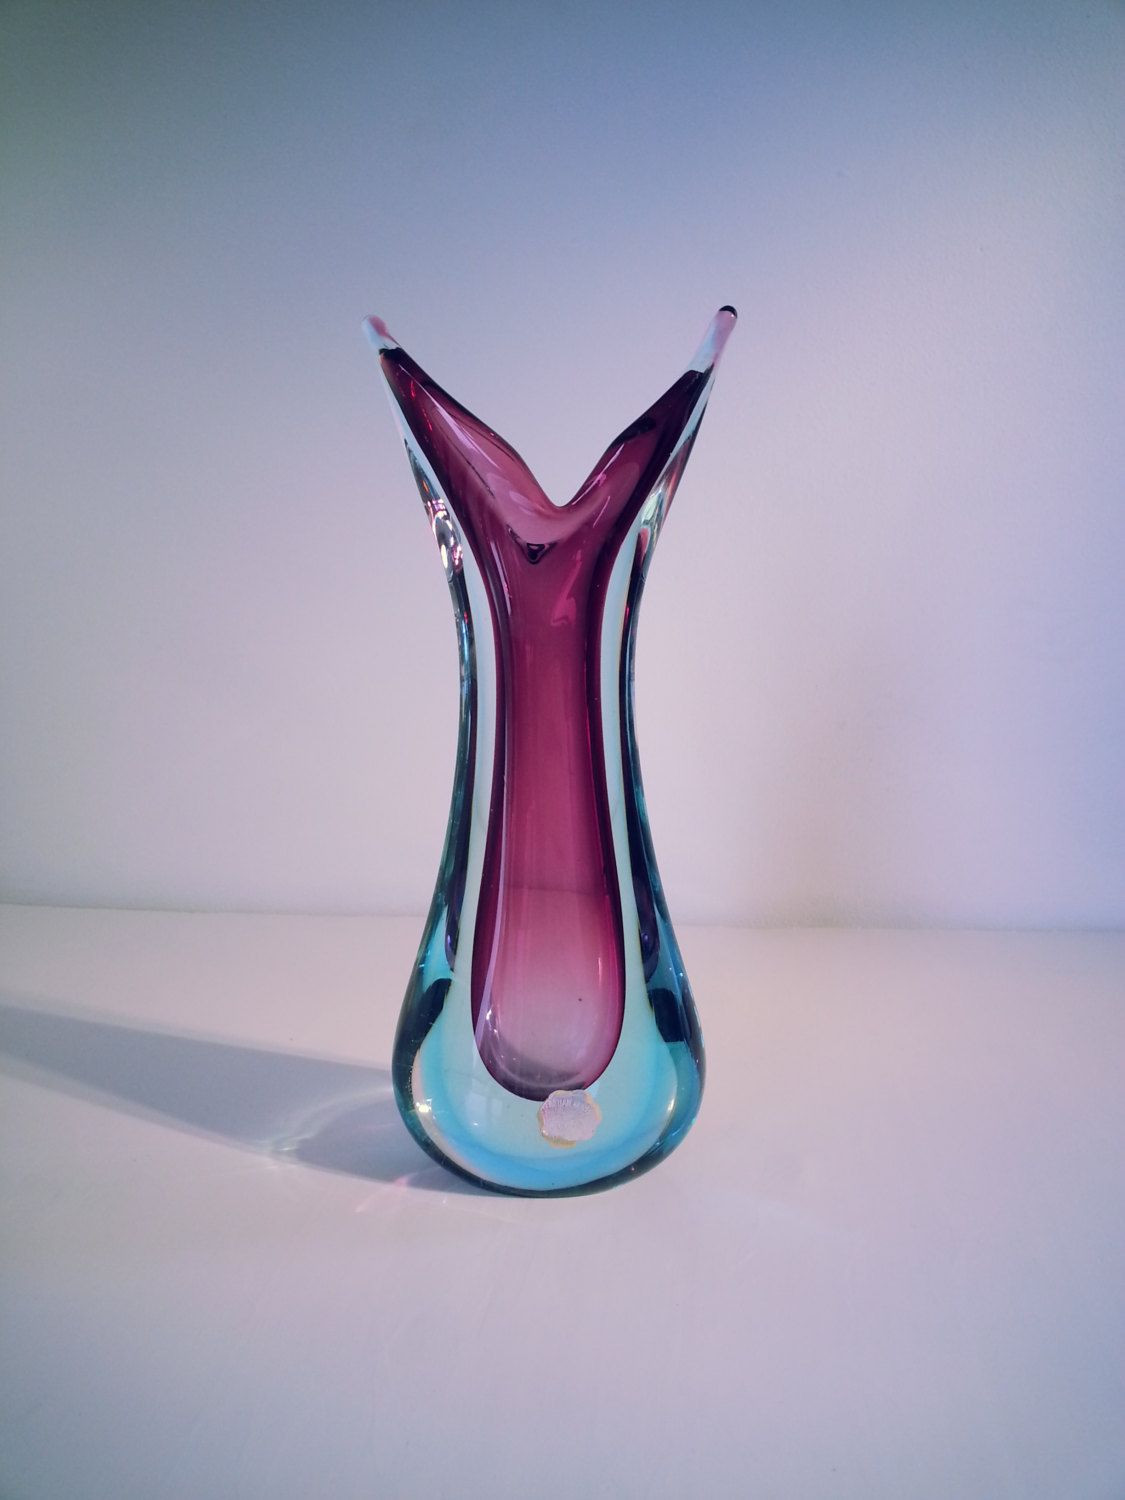 crystal flower vases for sale of murano sommerso genuine venetian glass 1950s 1960s purple blue within murano sommerso genuine venetian glass 1950s 1960s purple blue glass vase pulled design vase made in italy by fcollectables on etsy